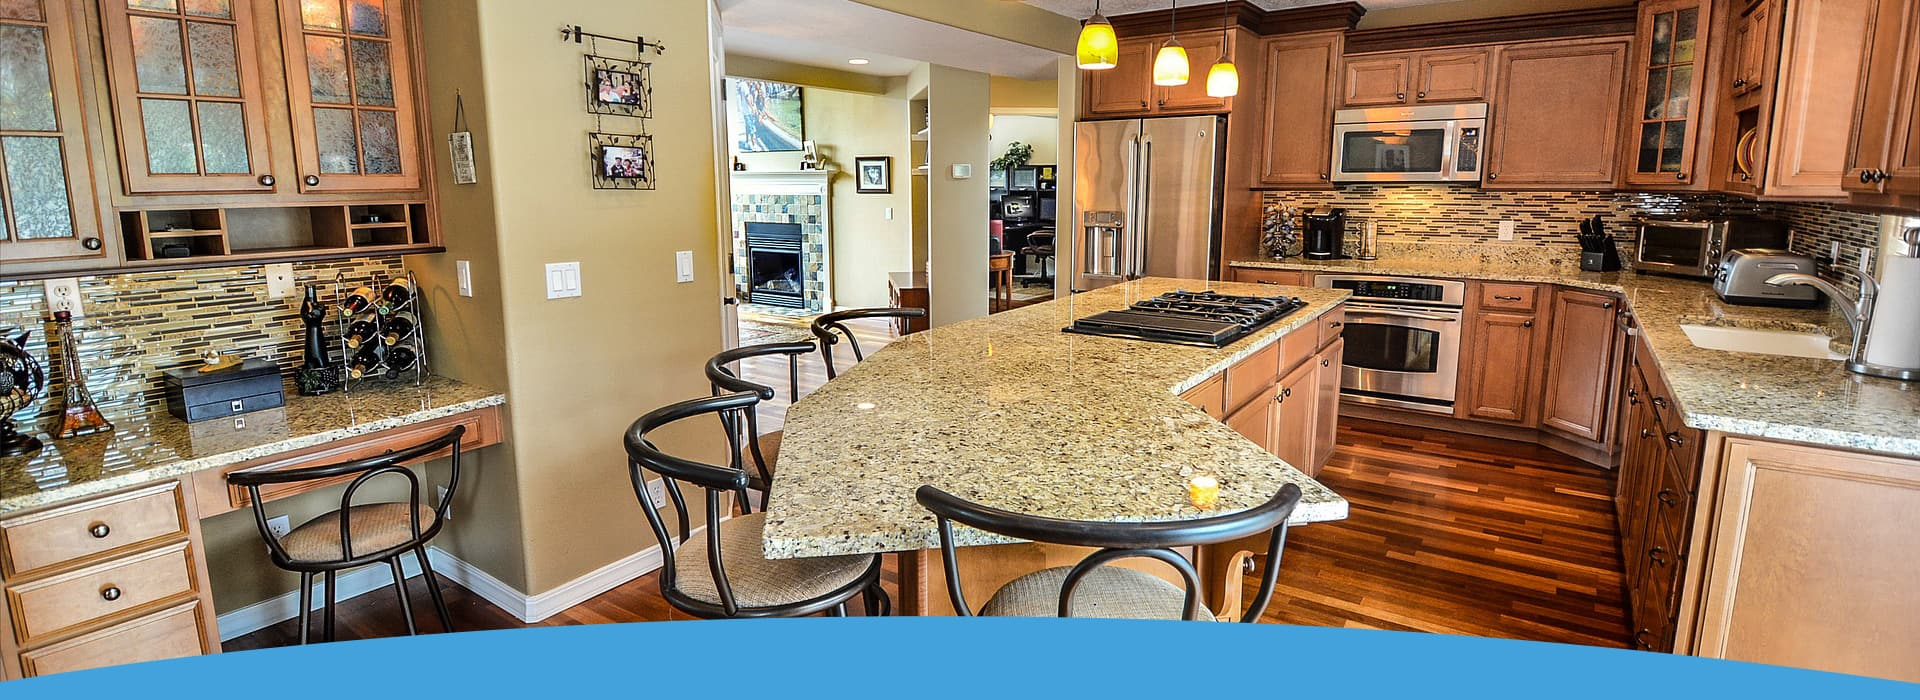 renew kitchen cabinets refacing refinishing where can i buy an island for my ocala's best home renovation team